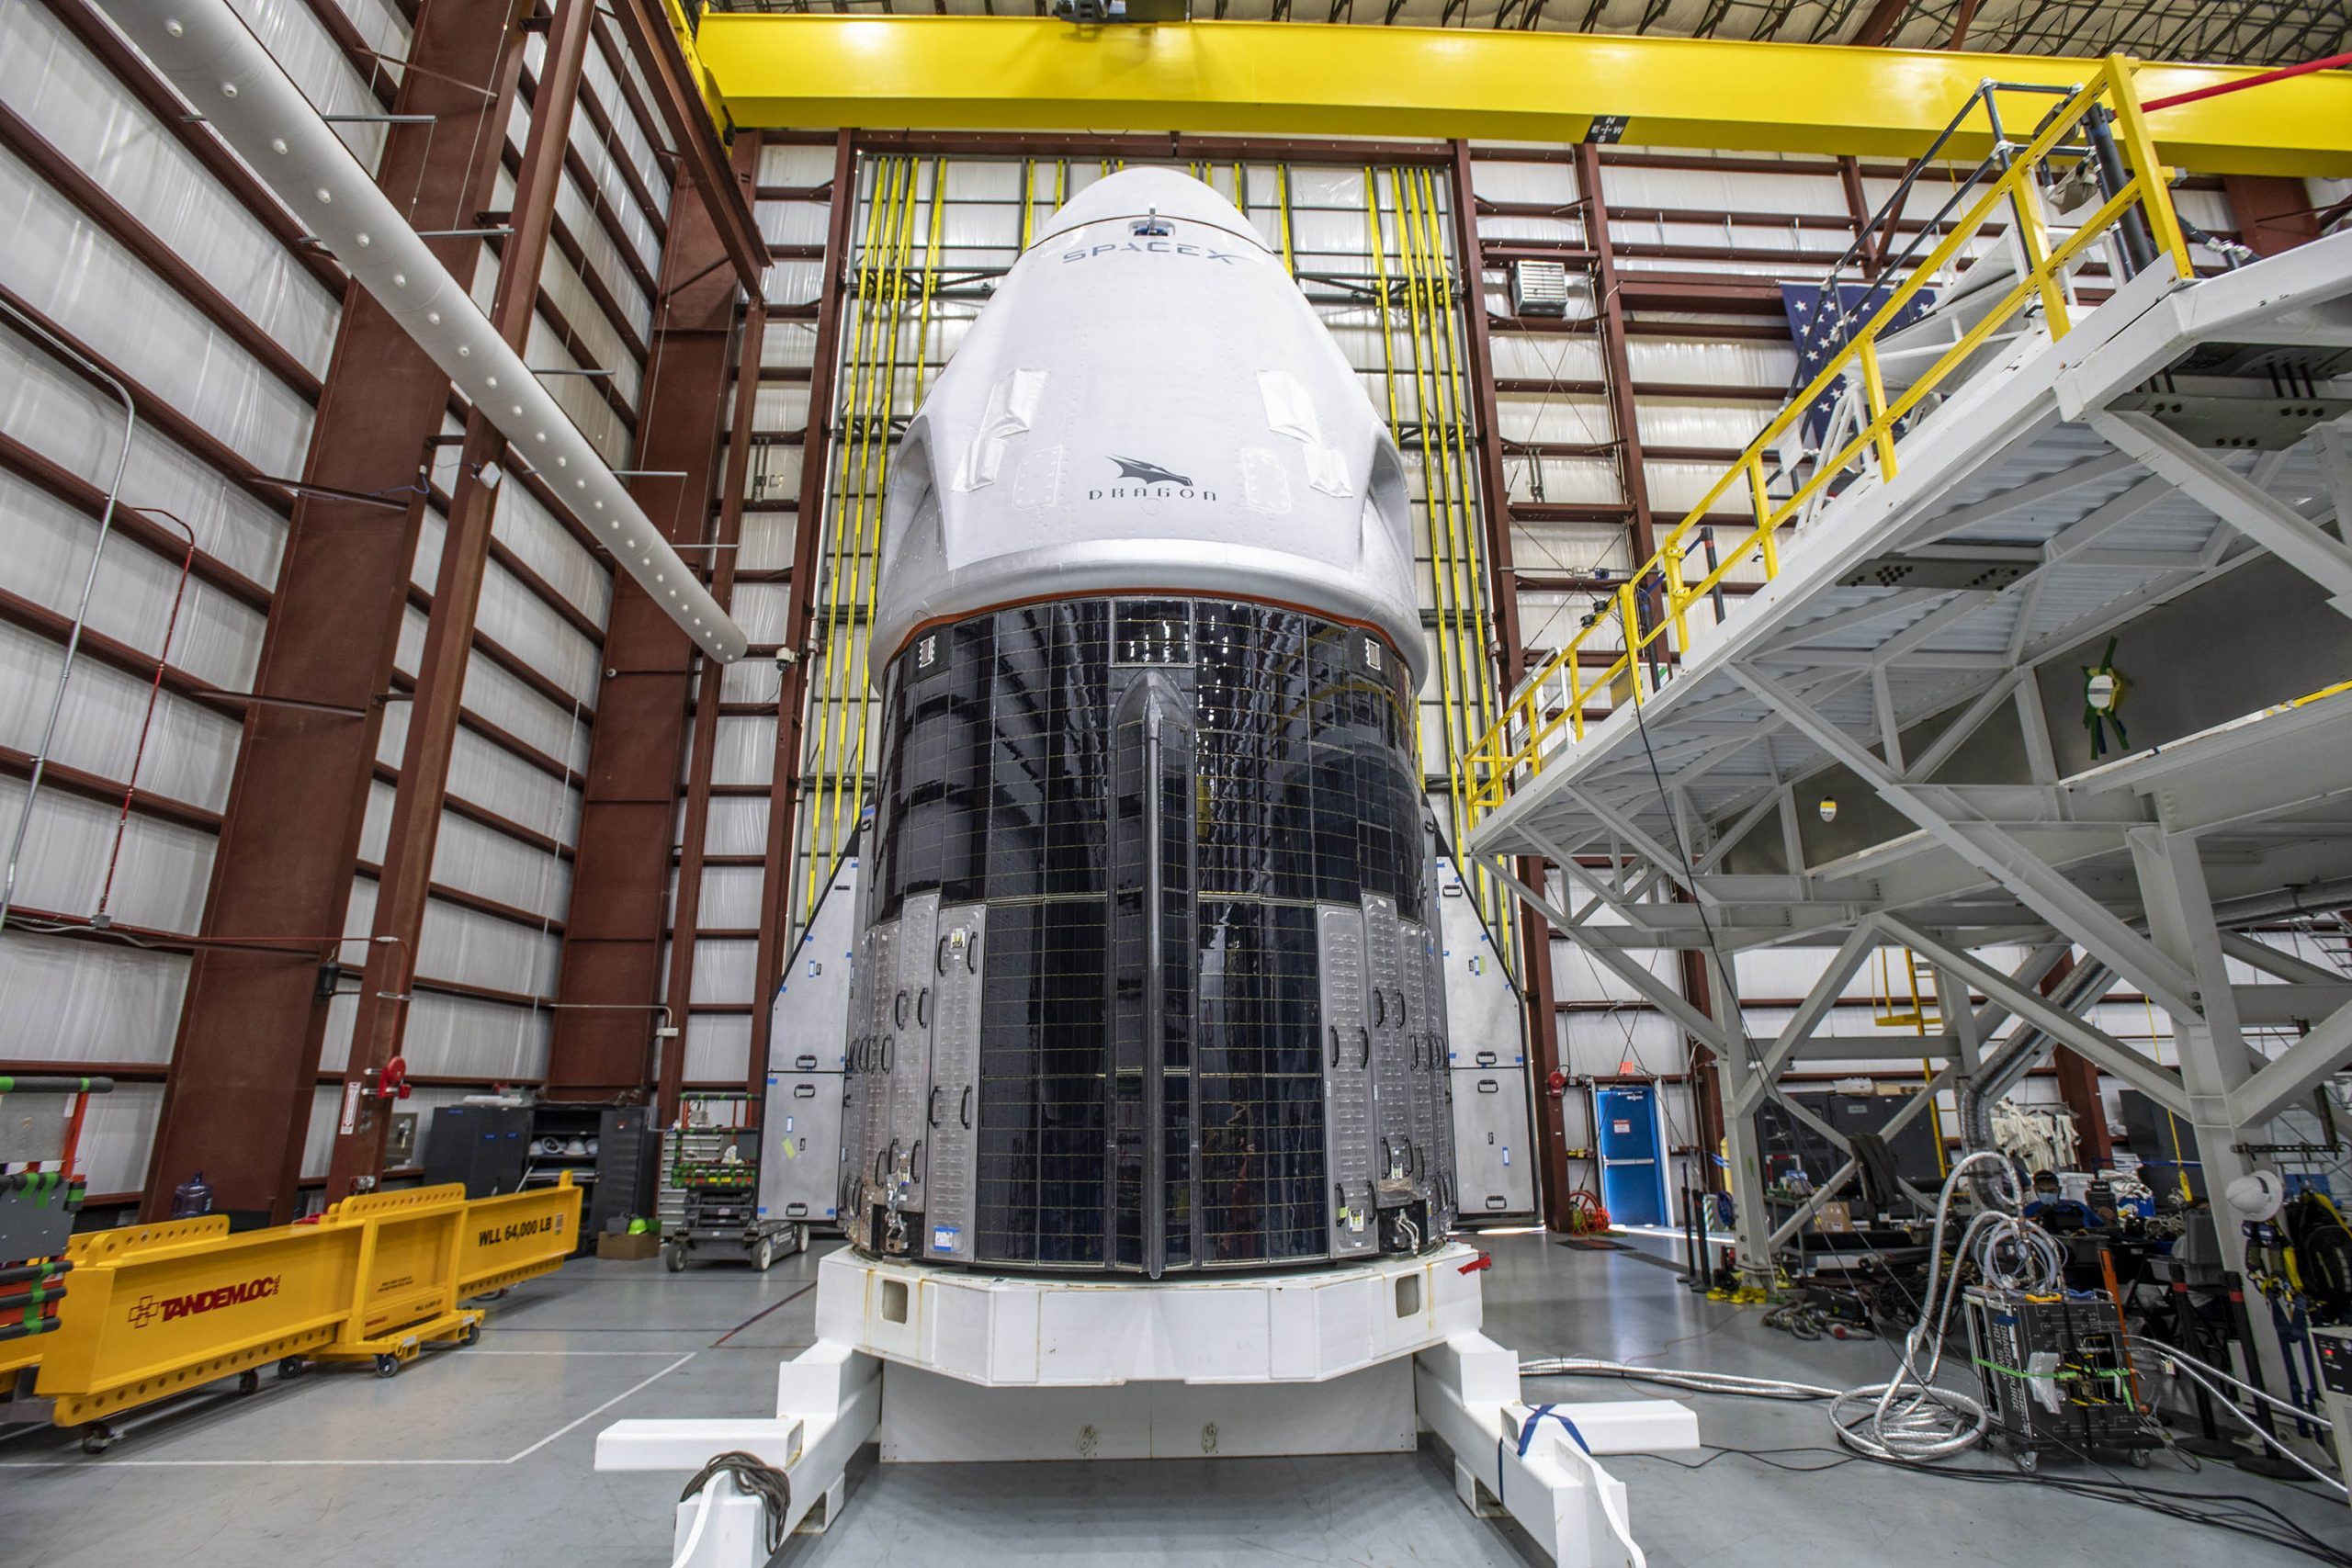 NASA Targets Crew 1 Launch for Nov. 14 and SpaceX Crew Dragon Arrives KSC Pad 39A